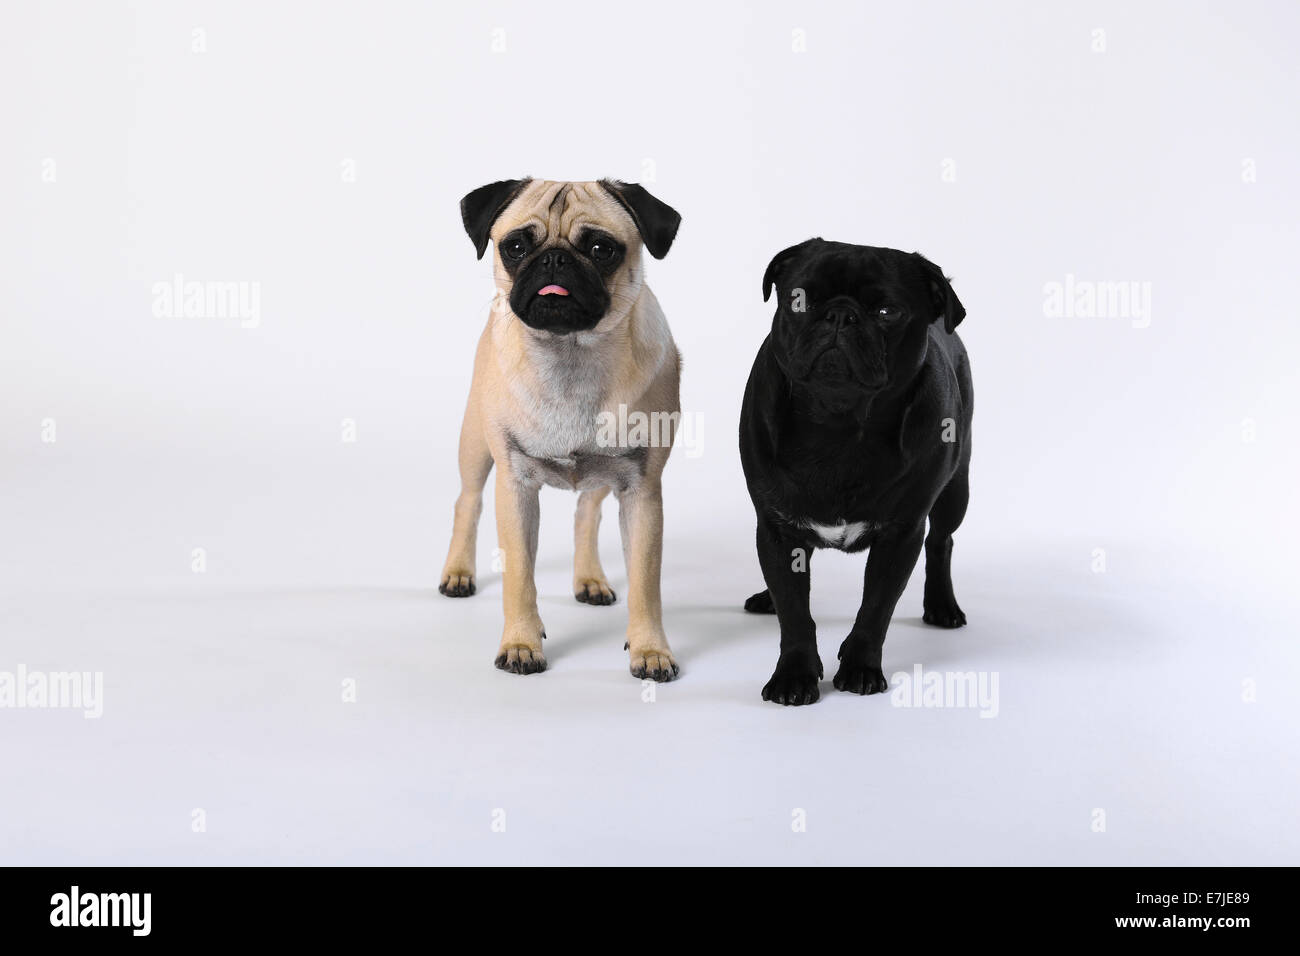 Pugs White Background High Resolution Stock Photography And Images Alamy